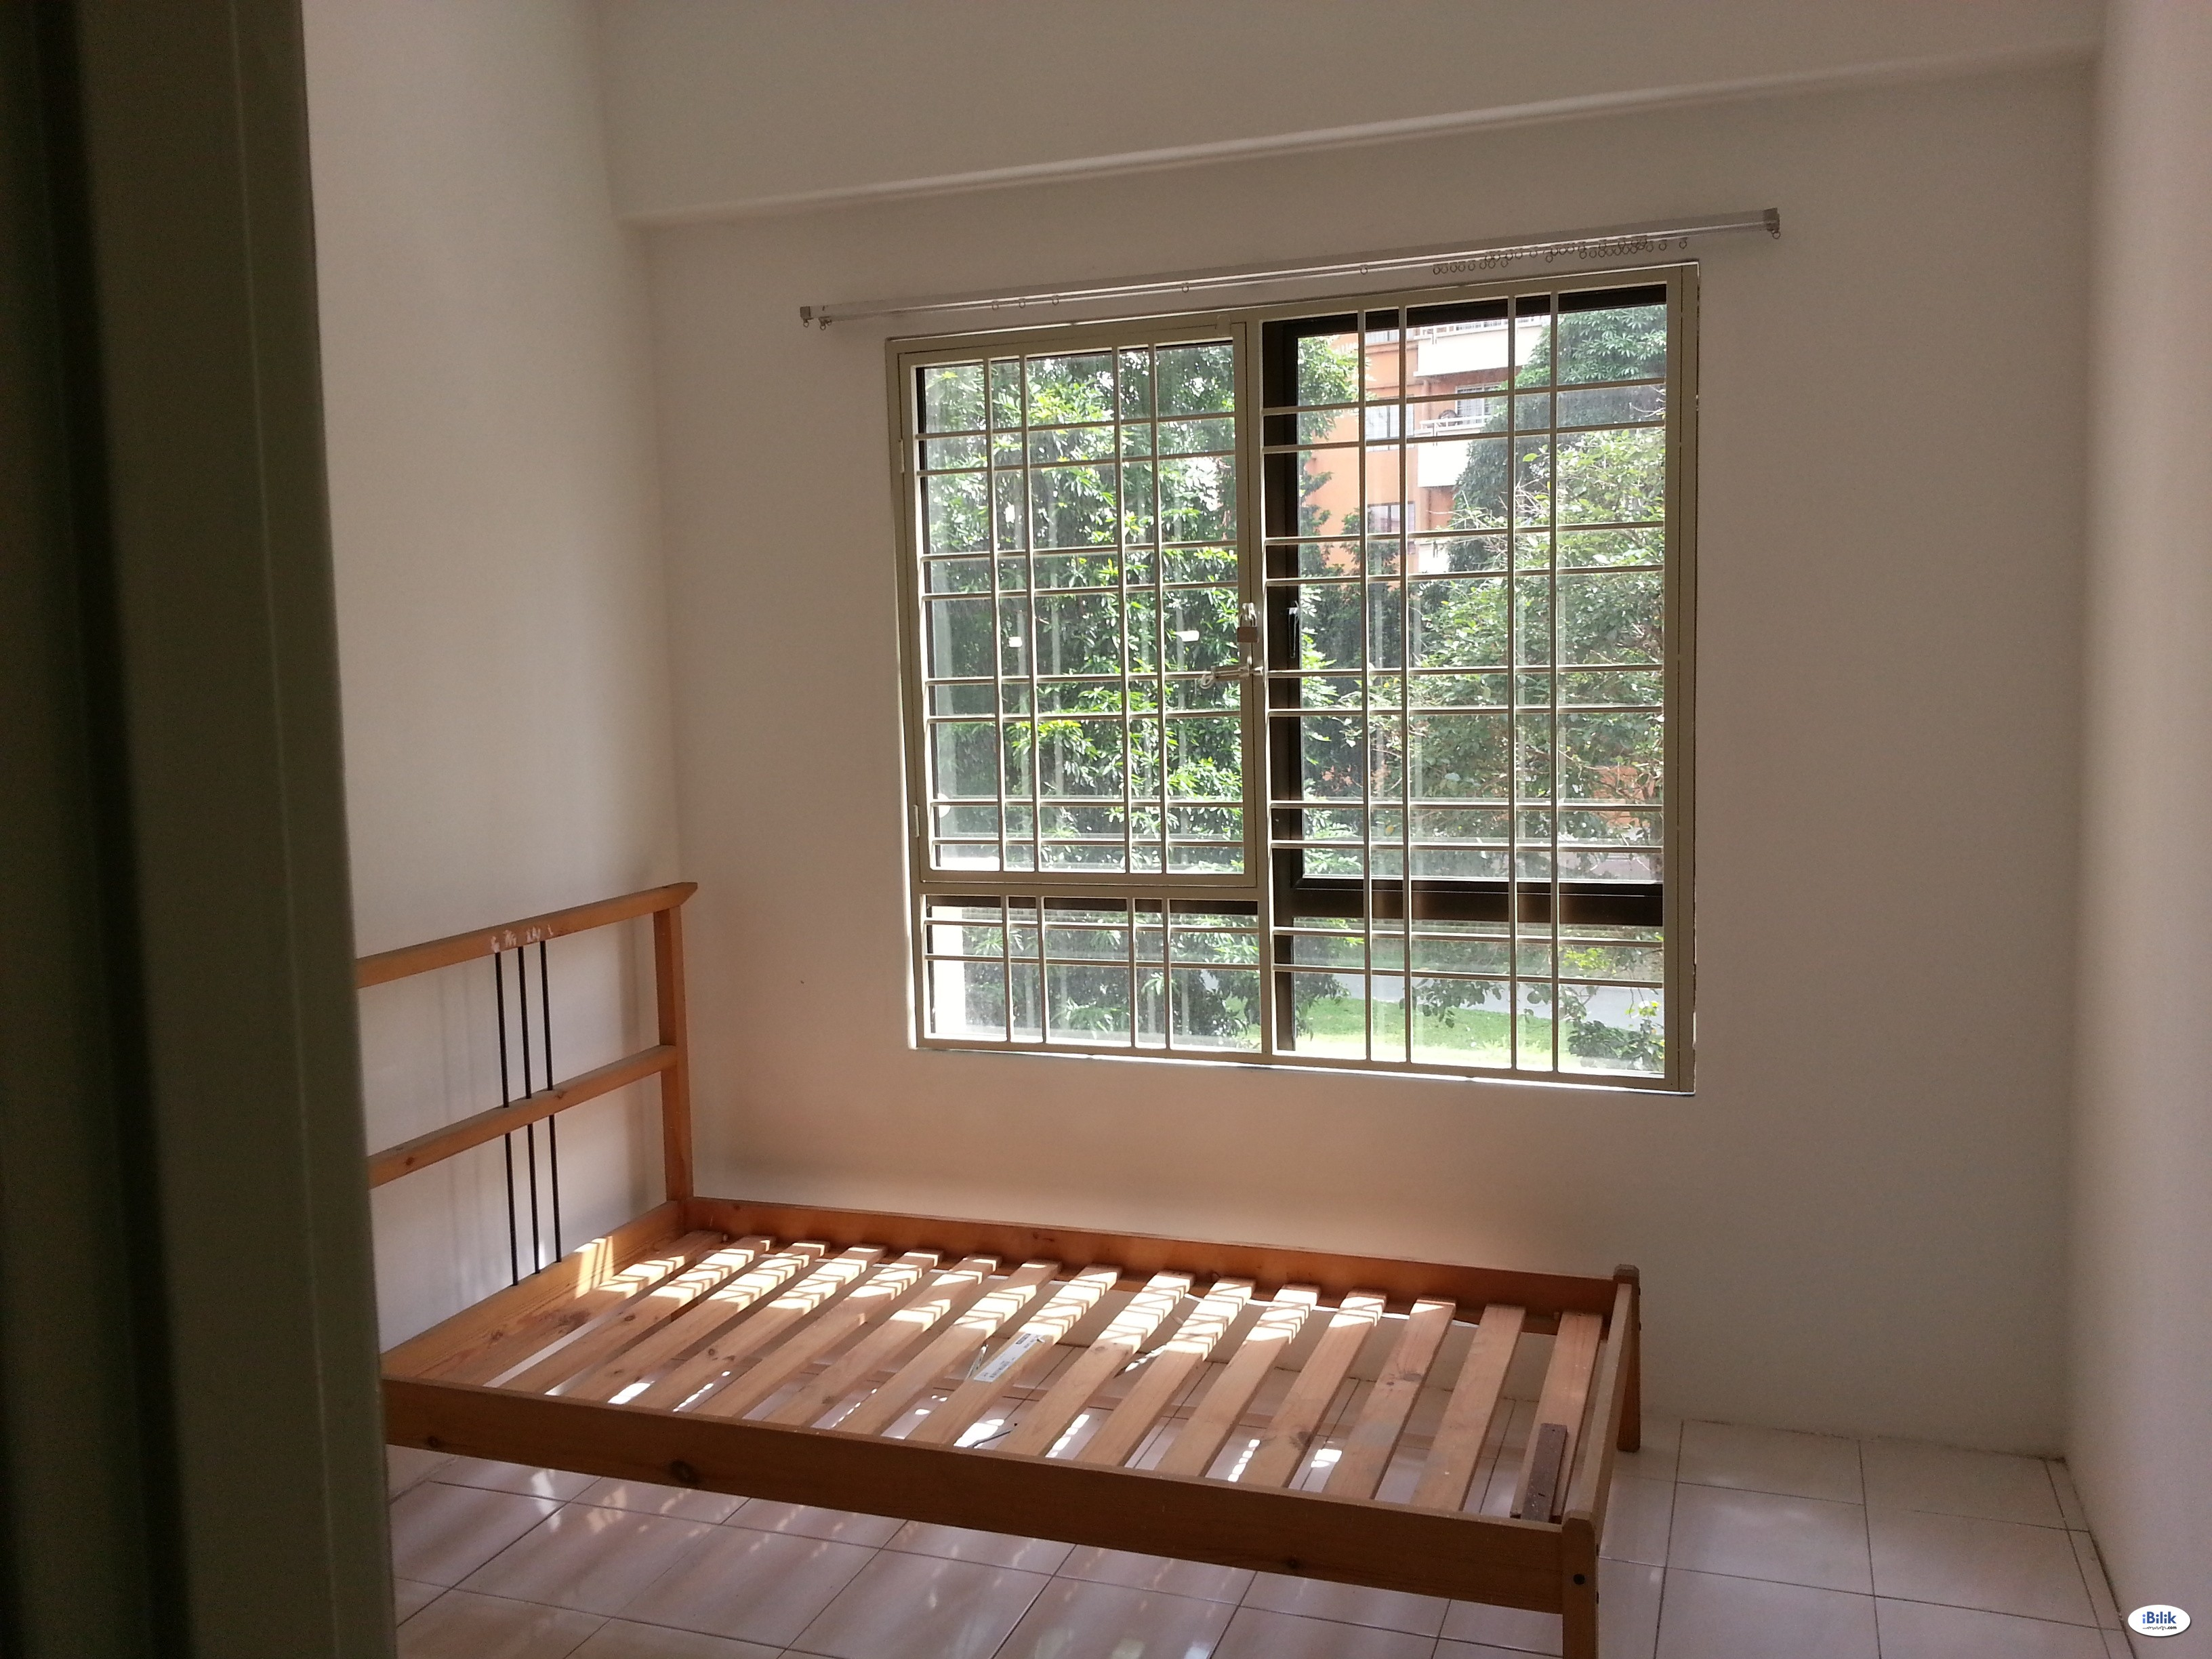 Middle Room at Vista Millennium, Puchong @ Malay Lady Only